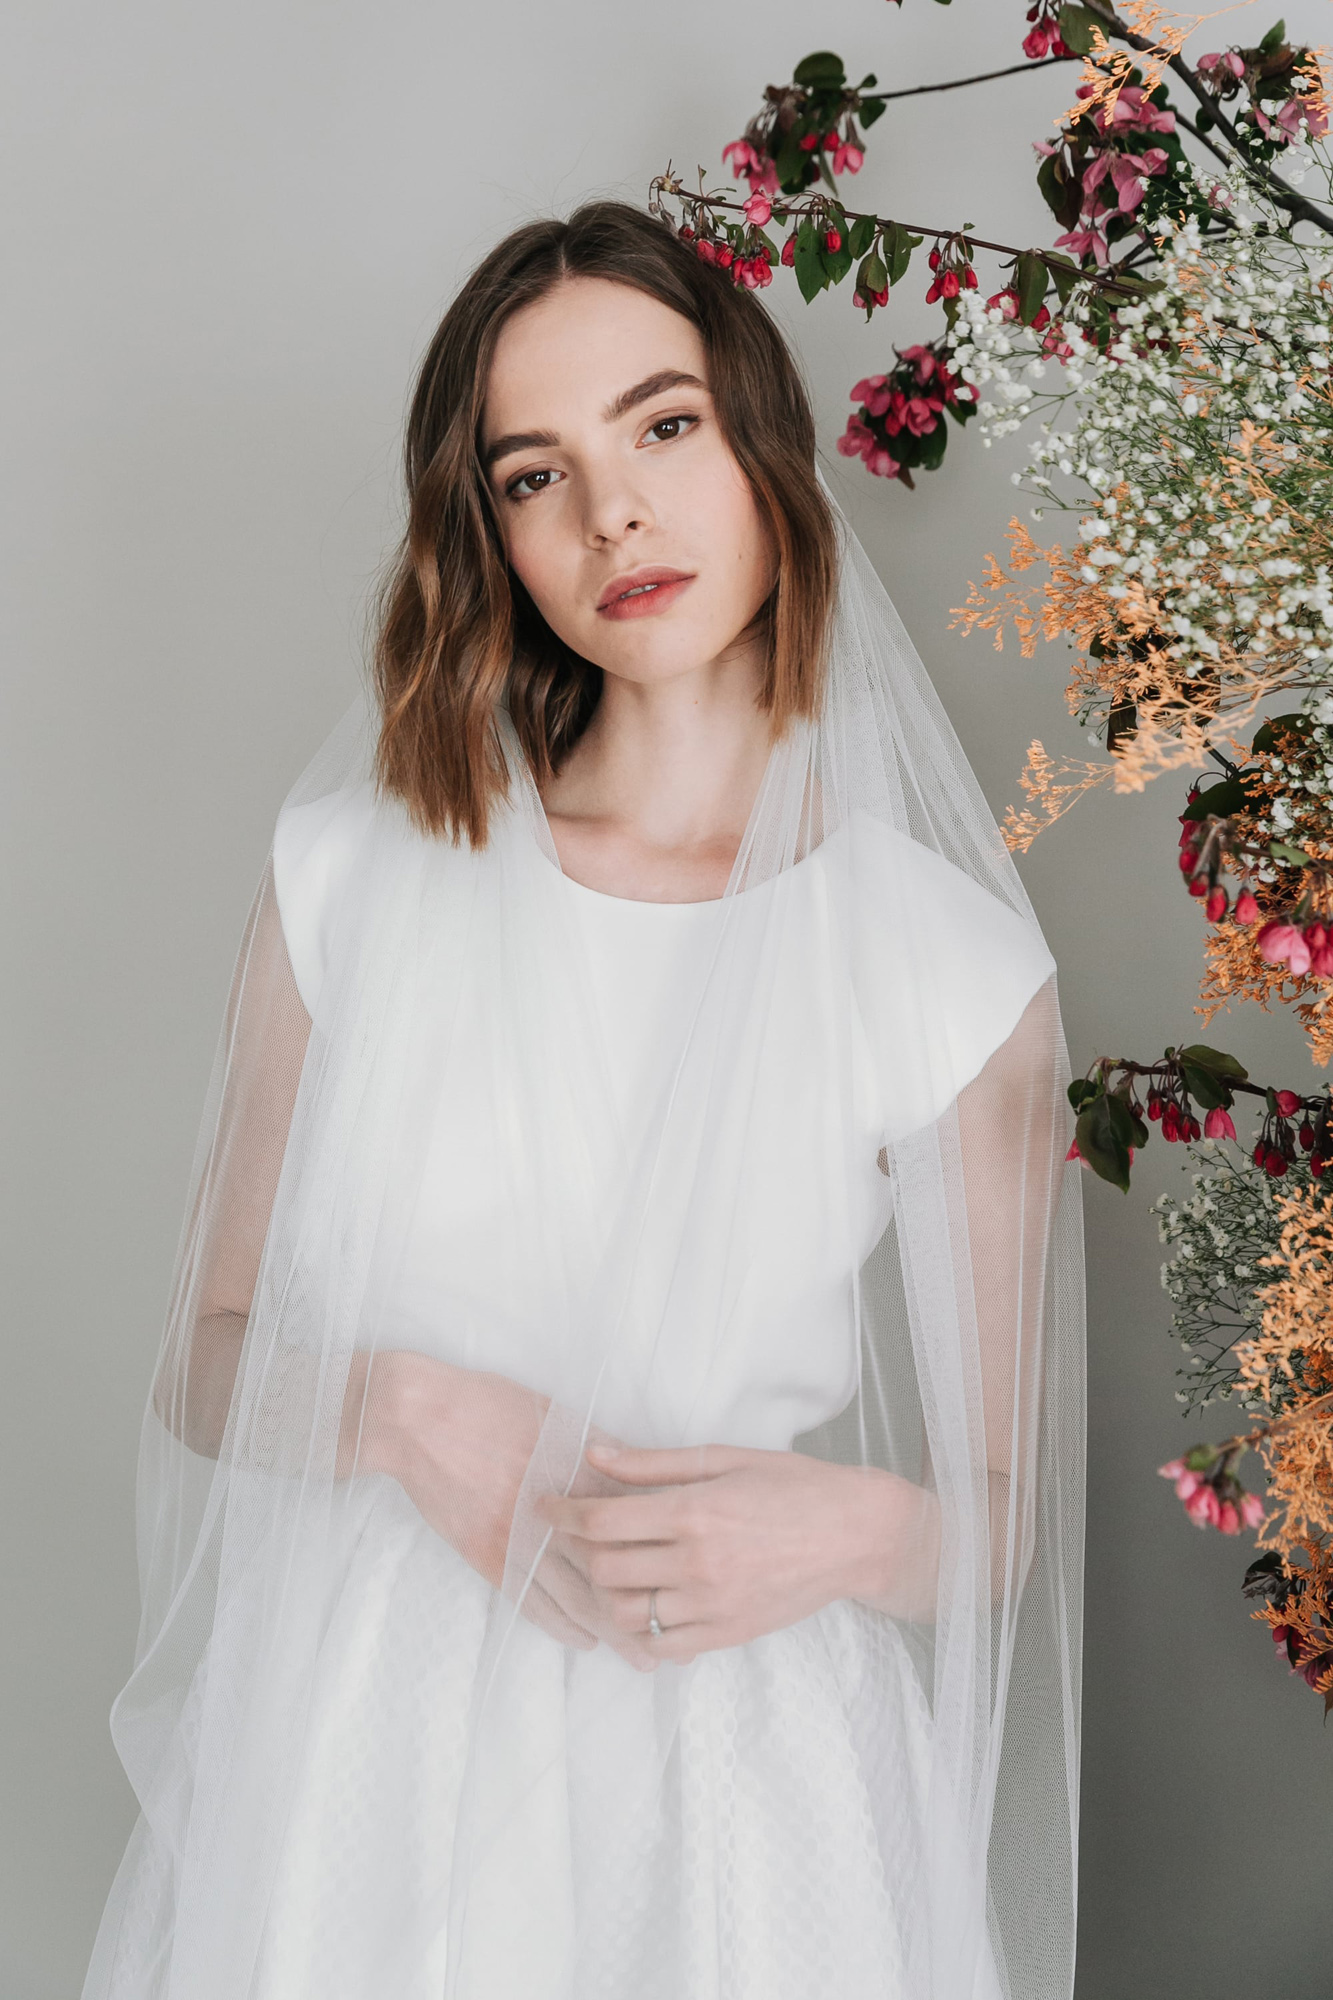 Kate-Beaumont-Sheffield-Picot-Edge-Silky-Tulle-Ethereal-Veil-1.jpg